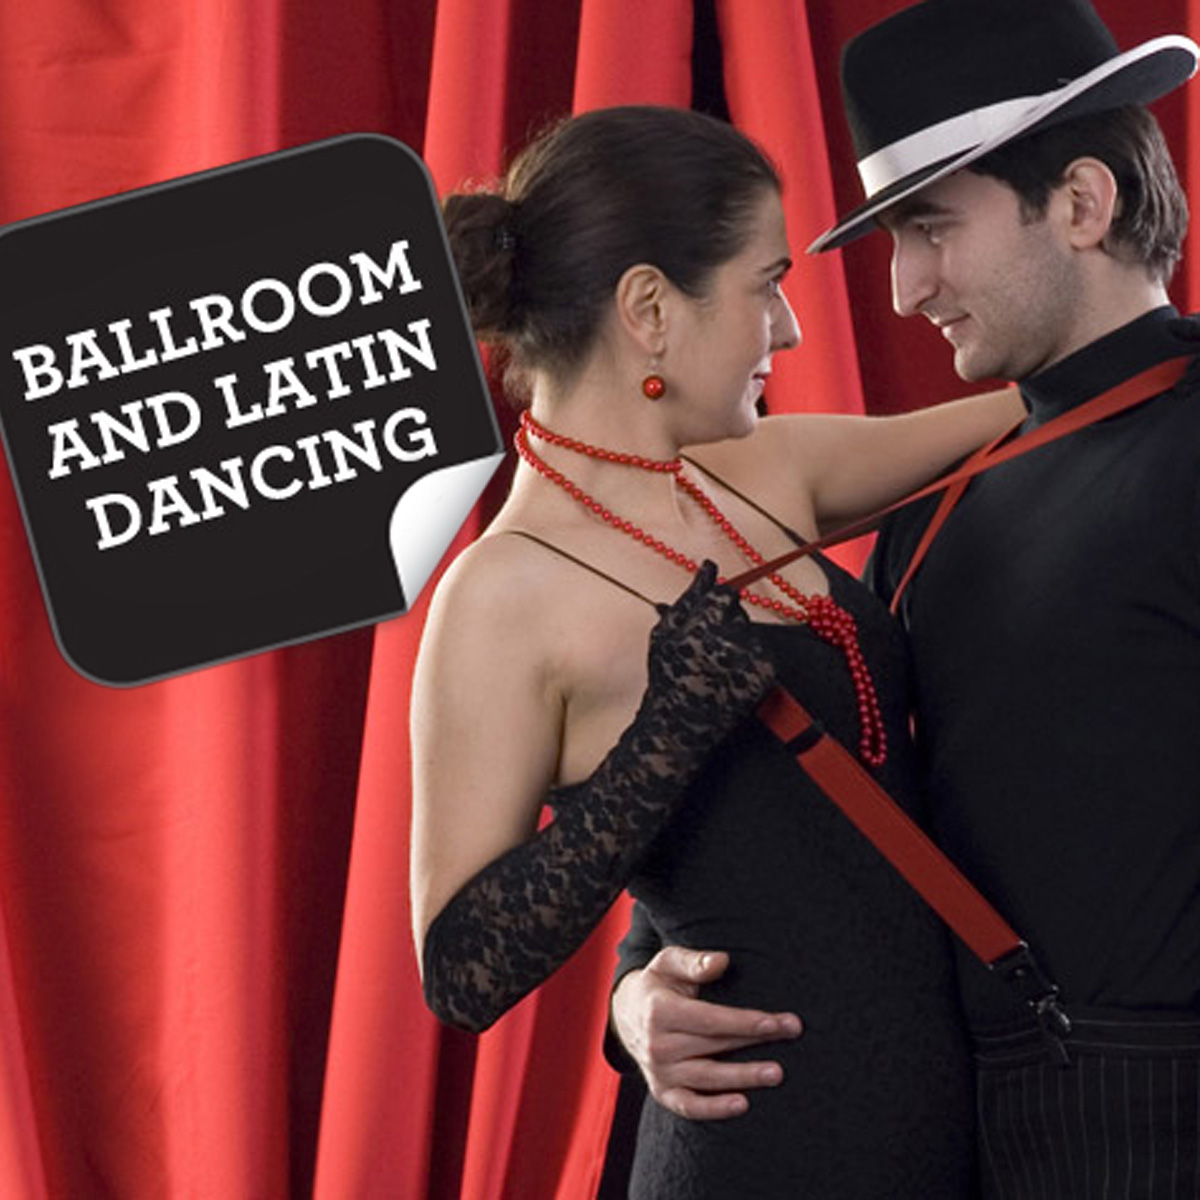 Ballroom and Latin American Dancing Experience for Two